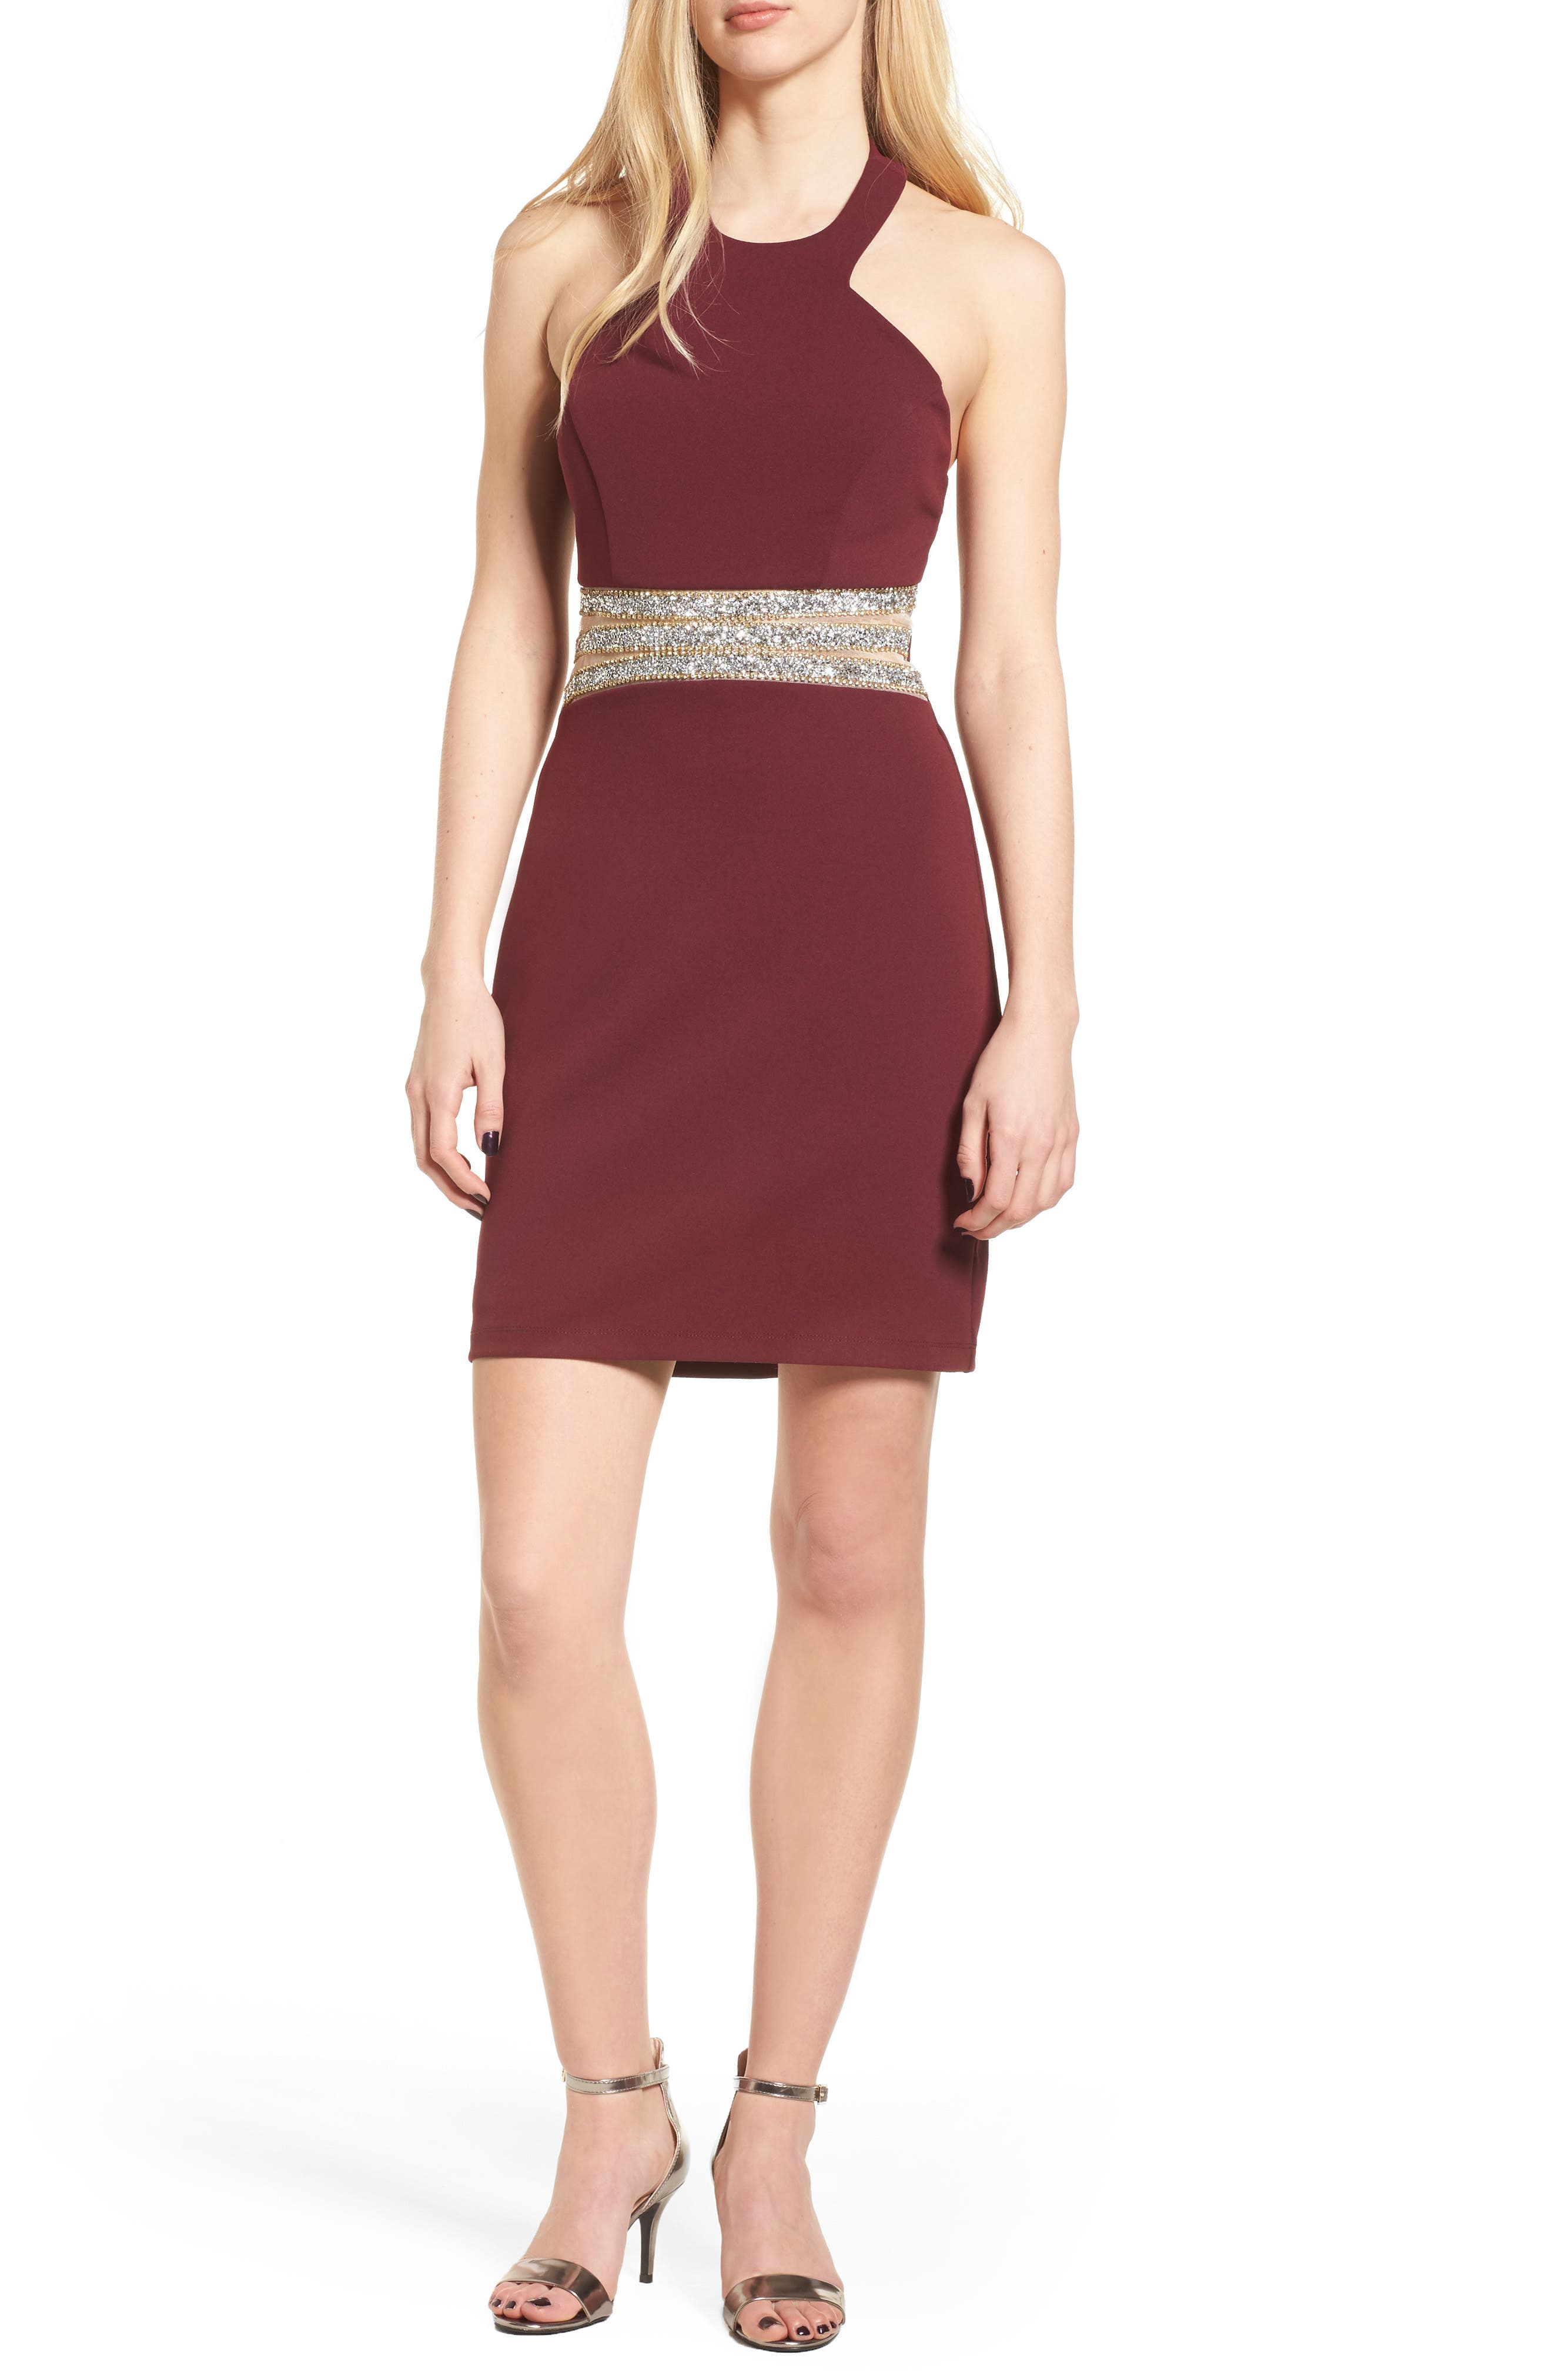 Alternate Image 1 Selected - Speechless Embellished Halter Body-Con Dress